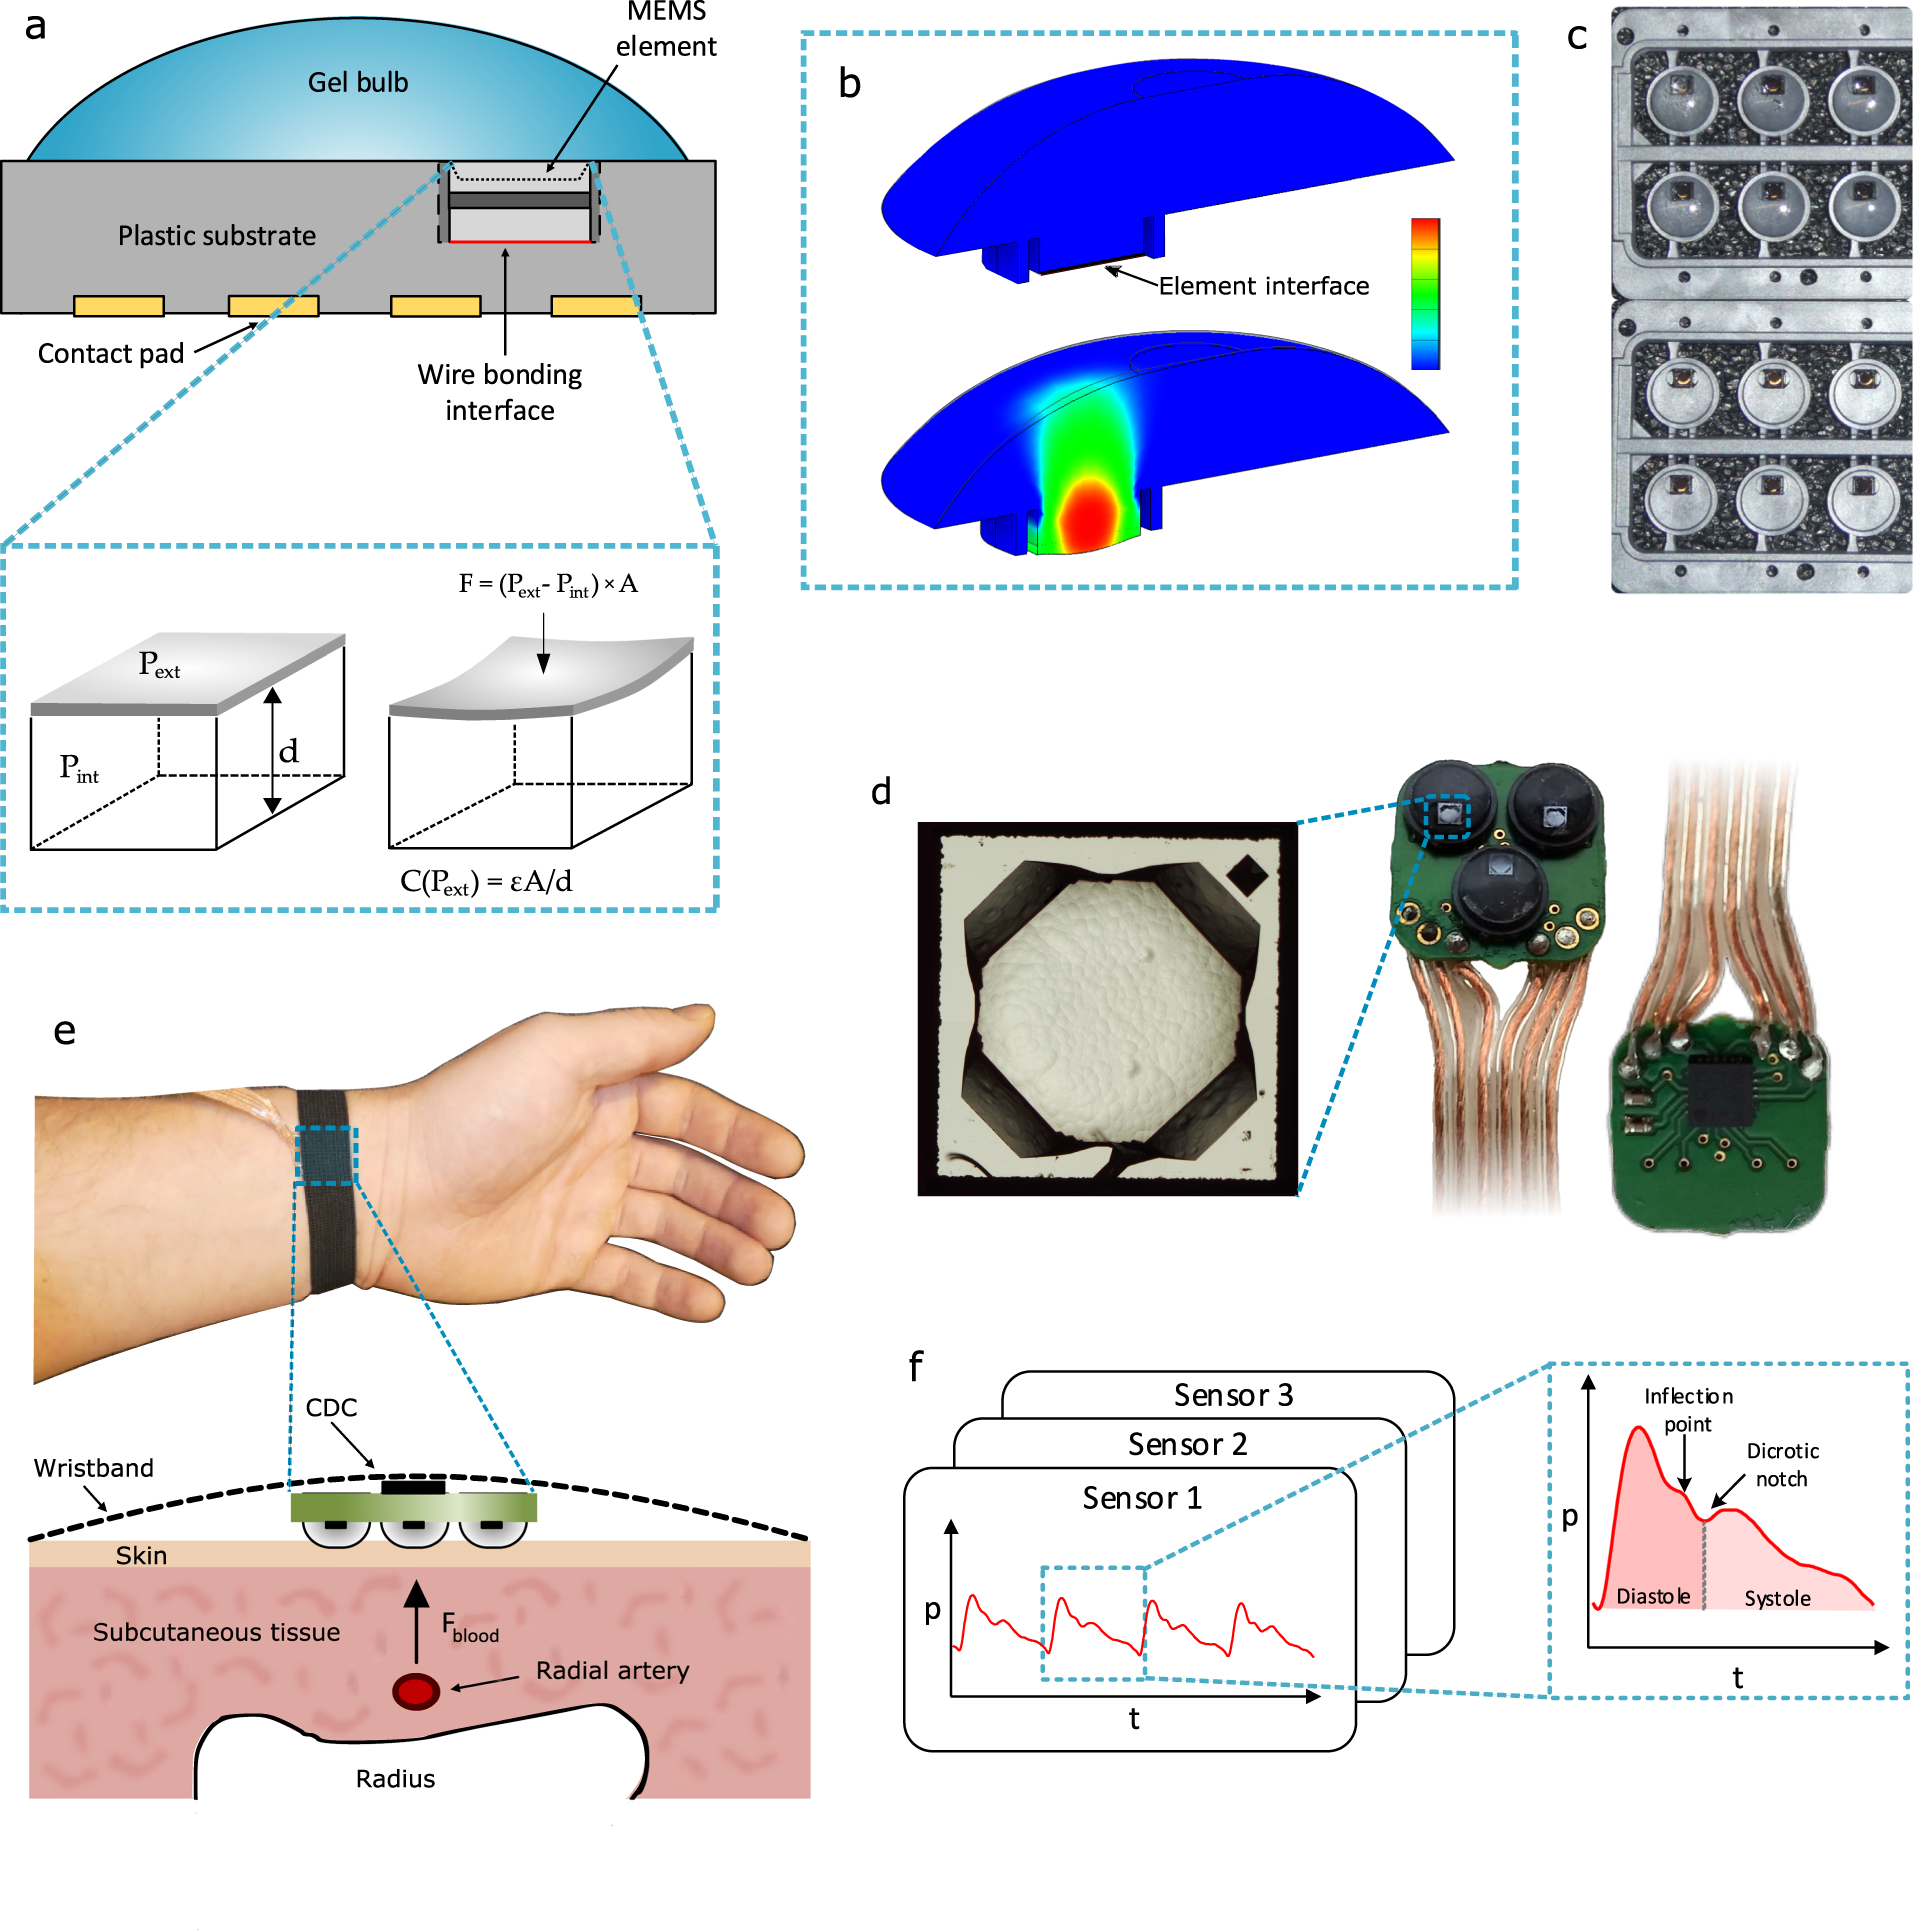 Clinical assessment of a non-invasive wearable MEMS pressure